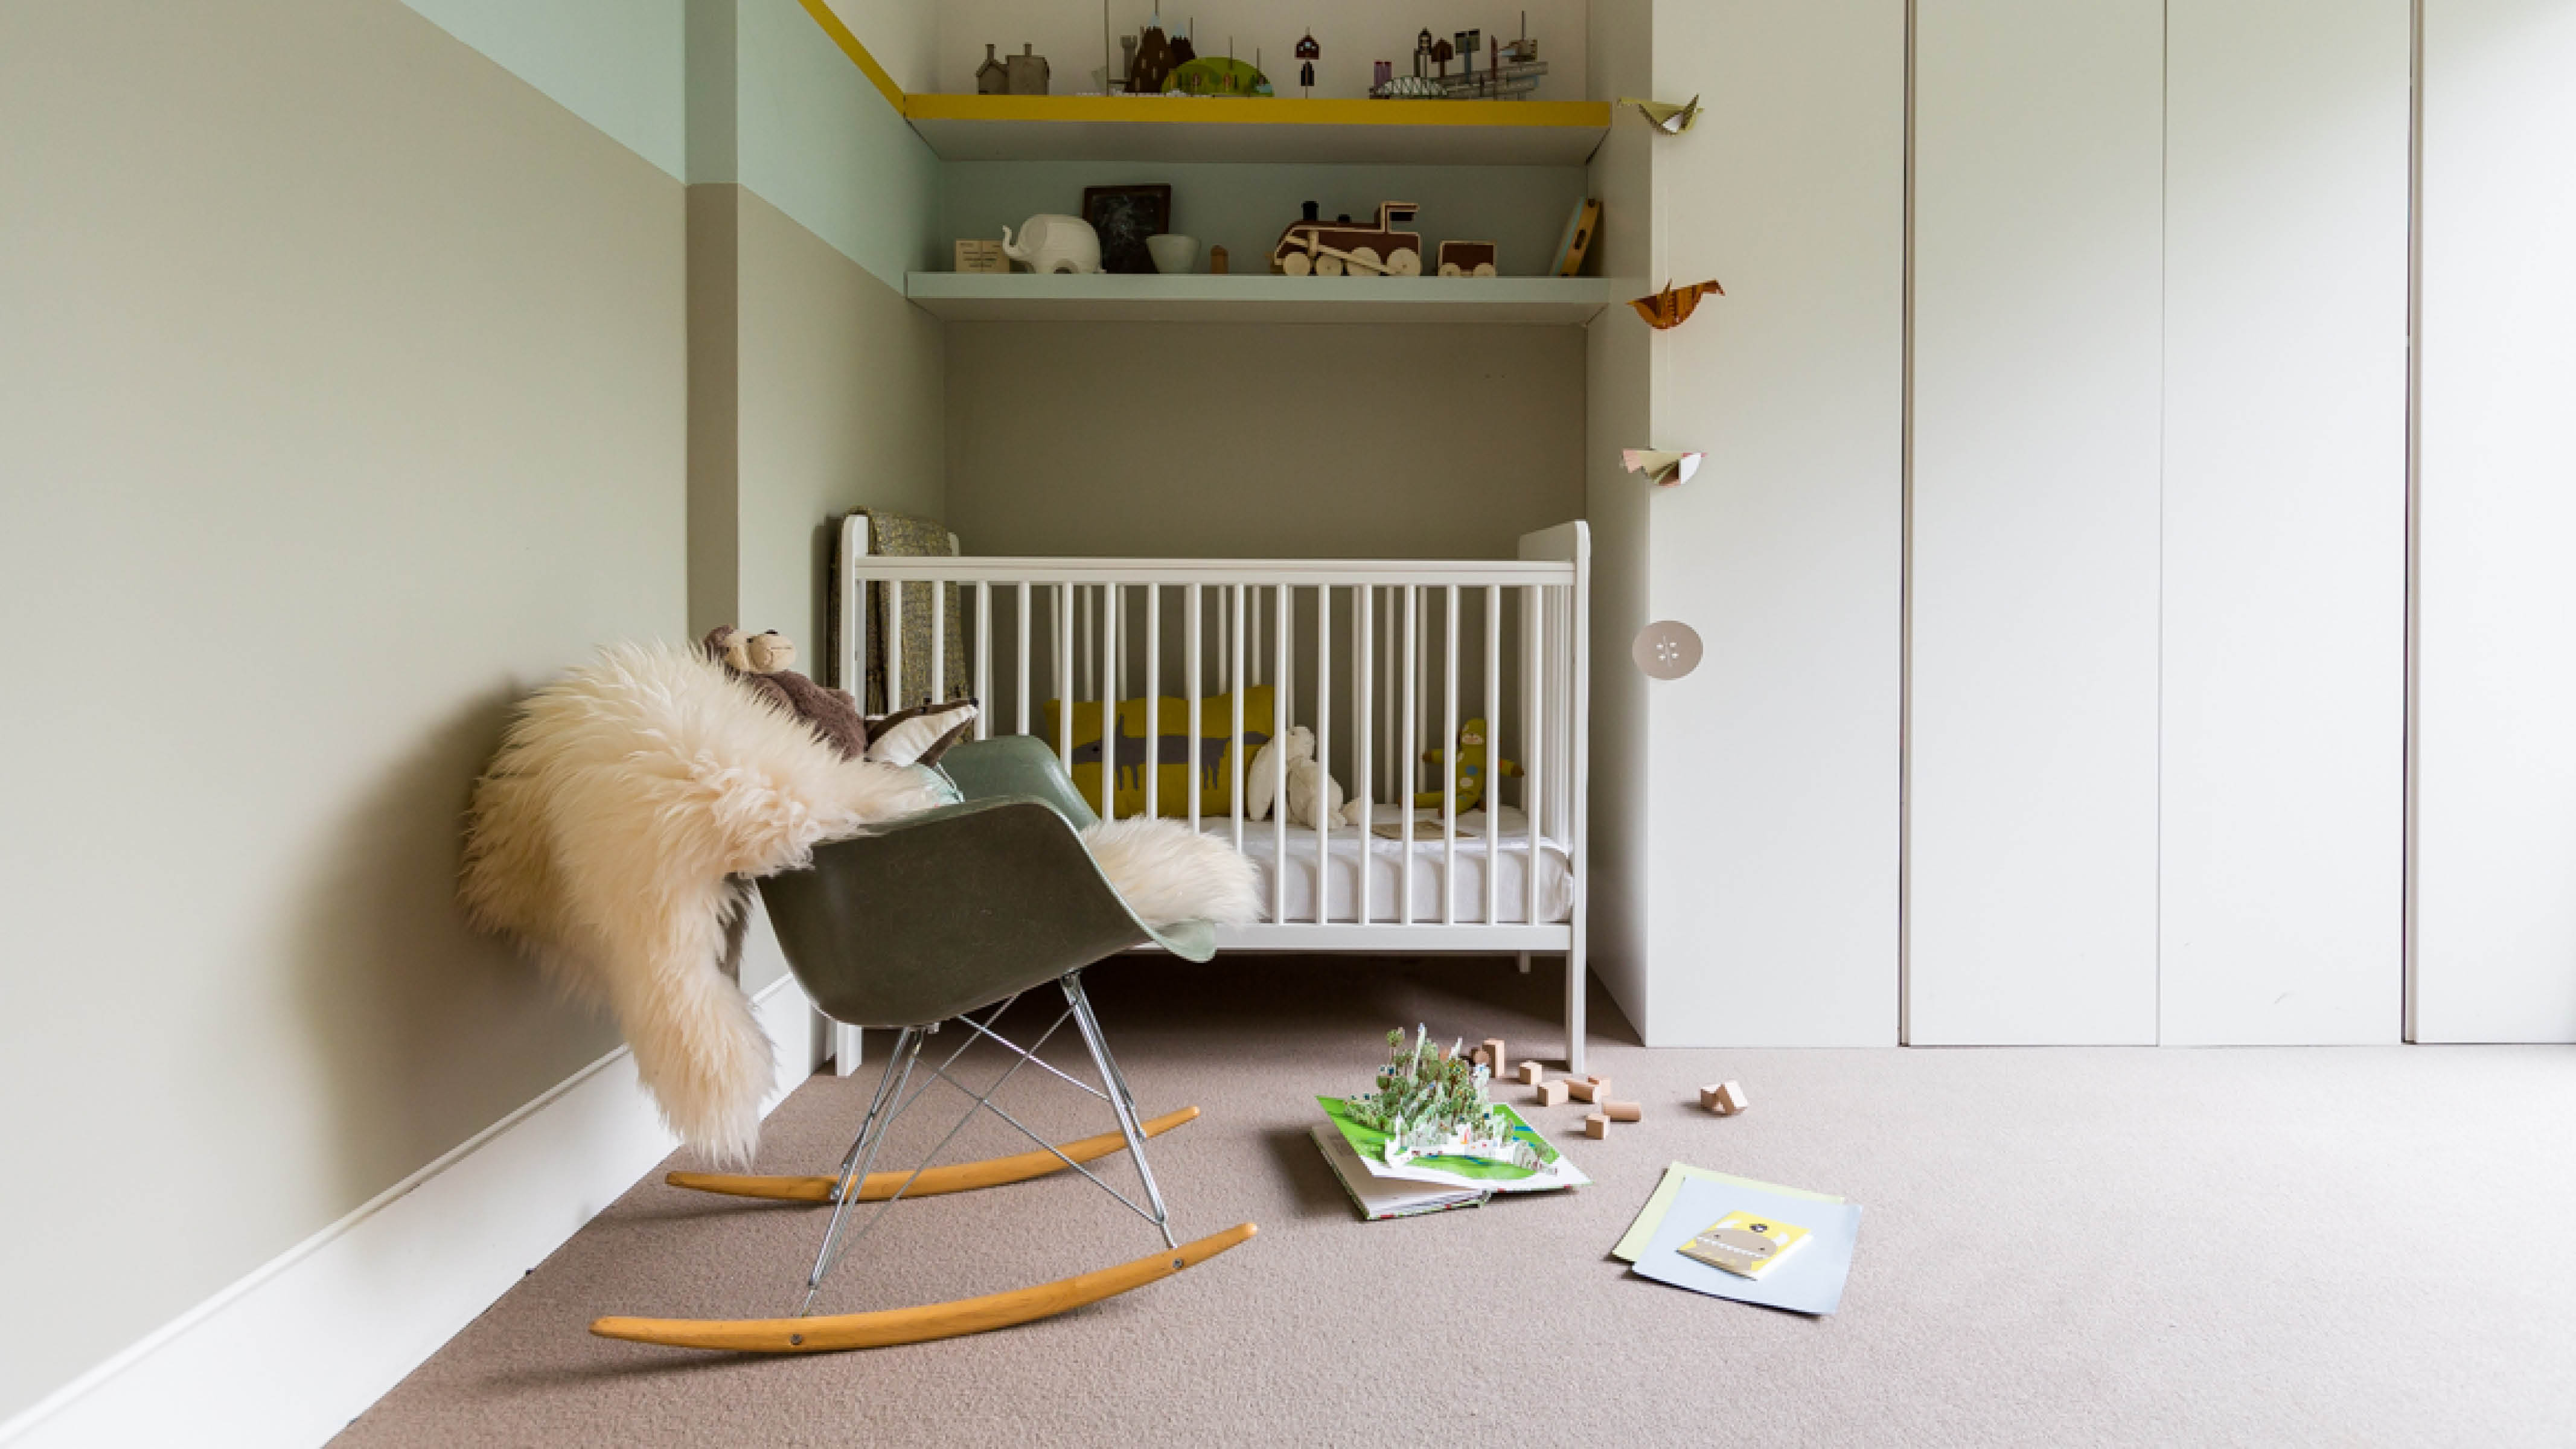 When choosing your gender-neutral colour scheme, think simplicity: the idea is to create a beautiful, neutral canvas that can be dressed up with soft furnishings and other accessories once your baby is born.